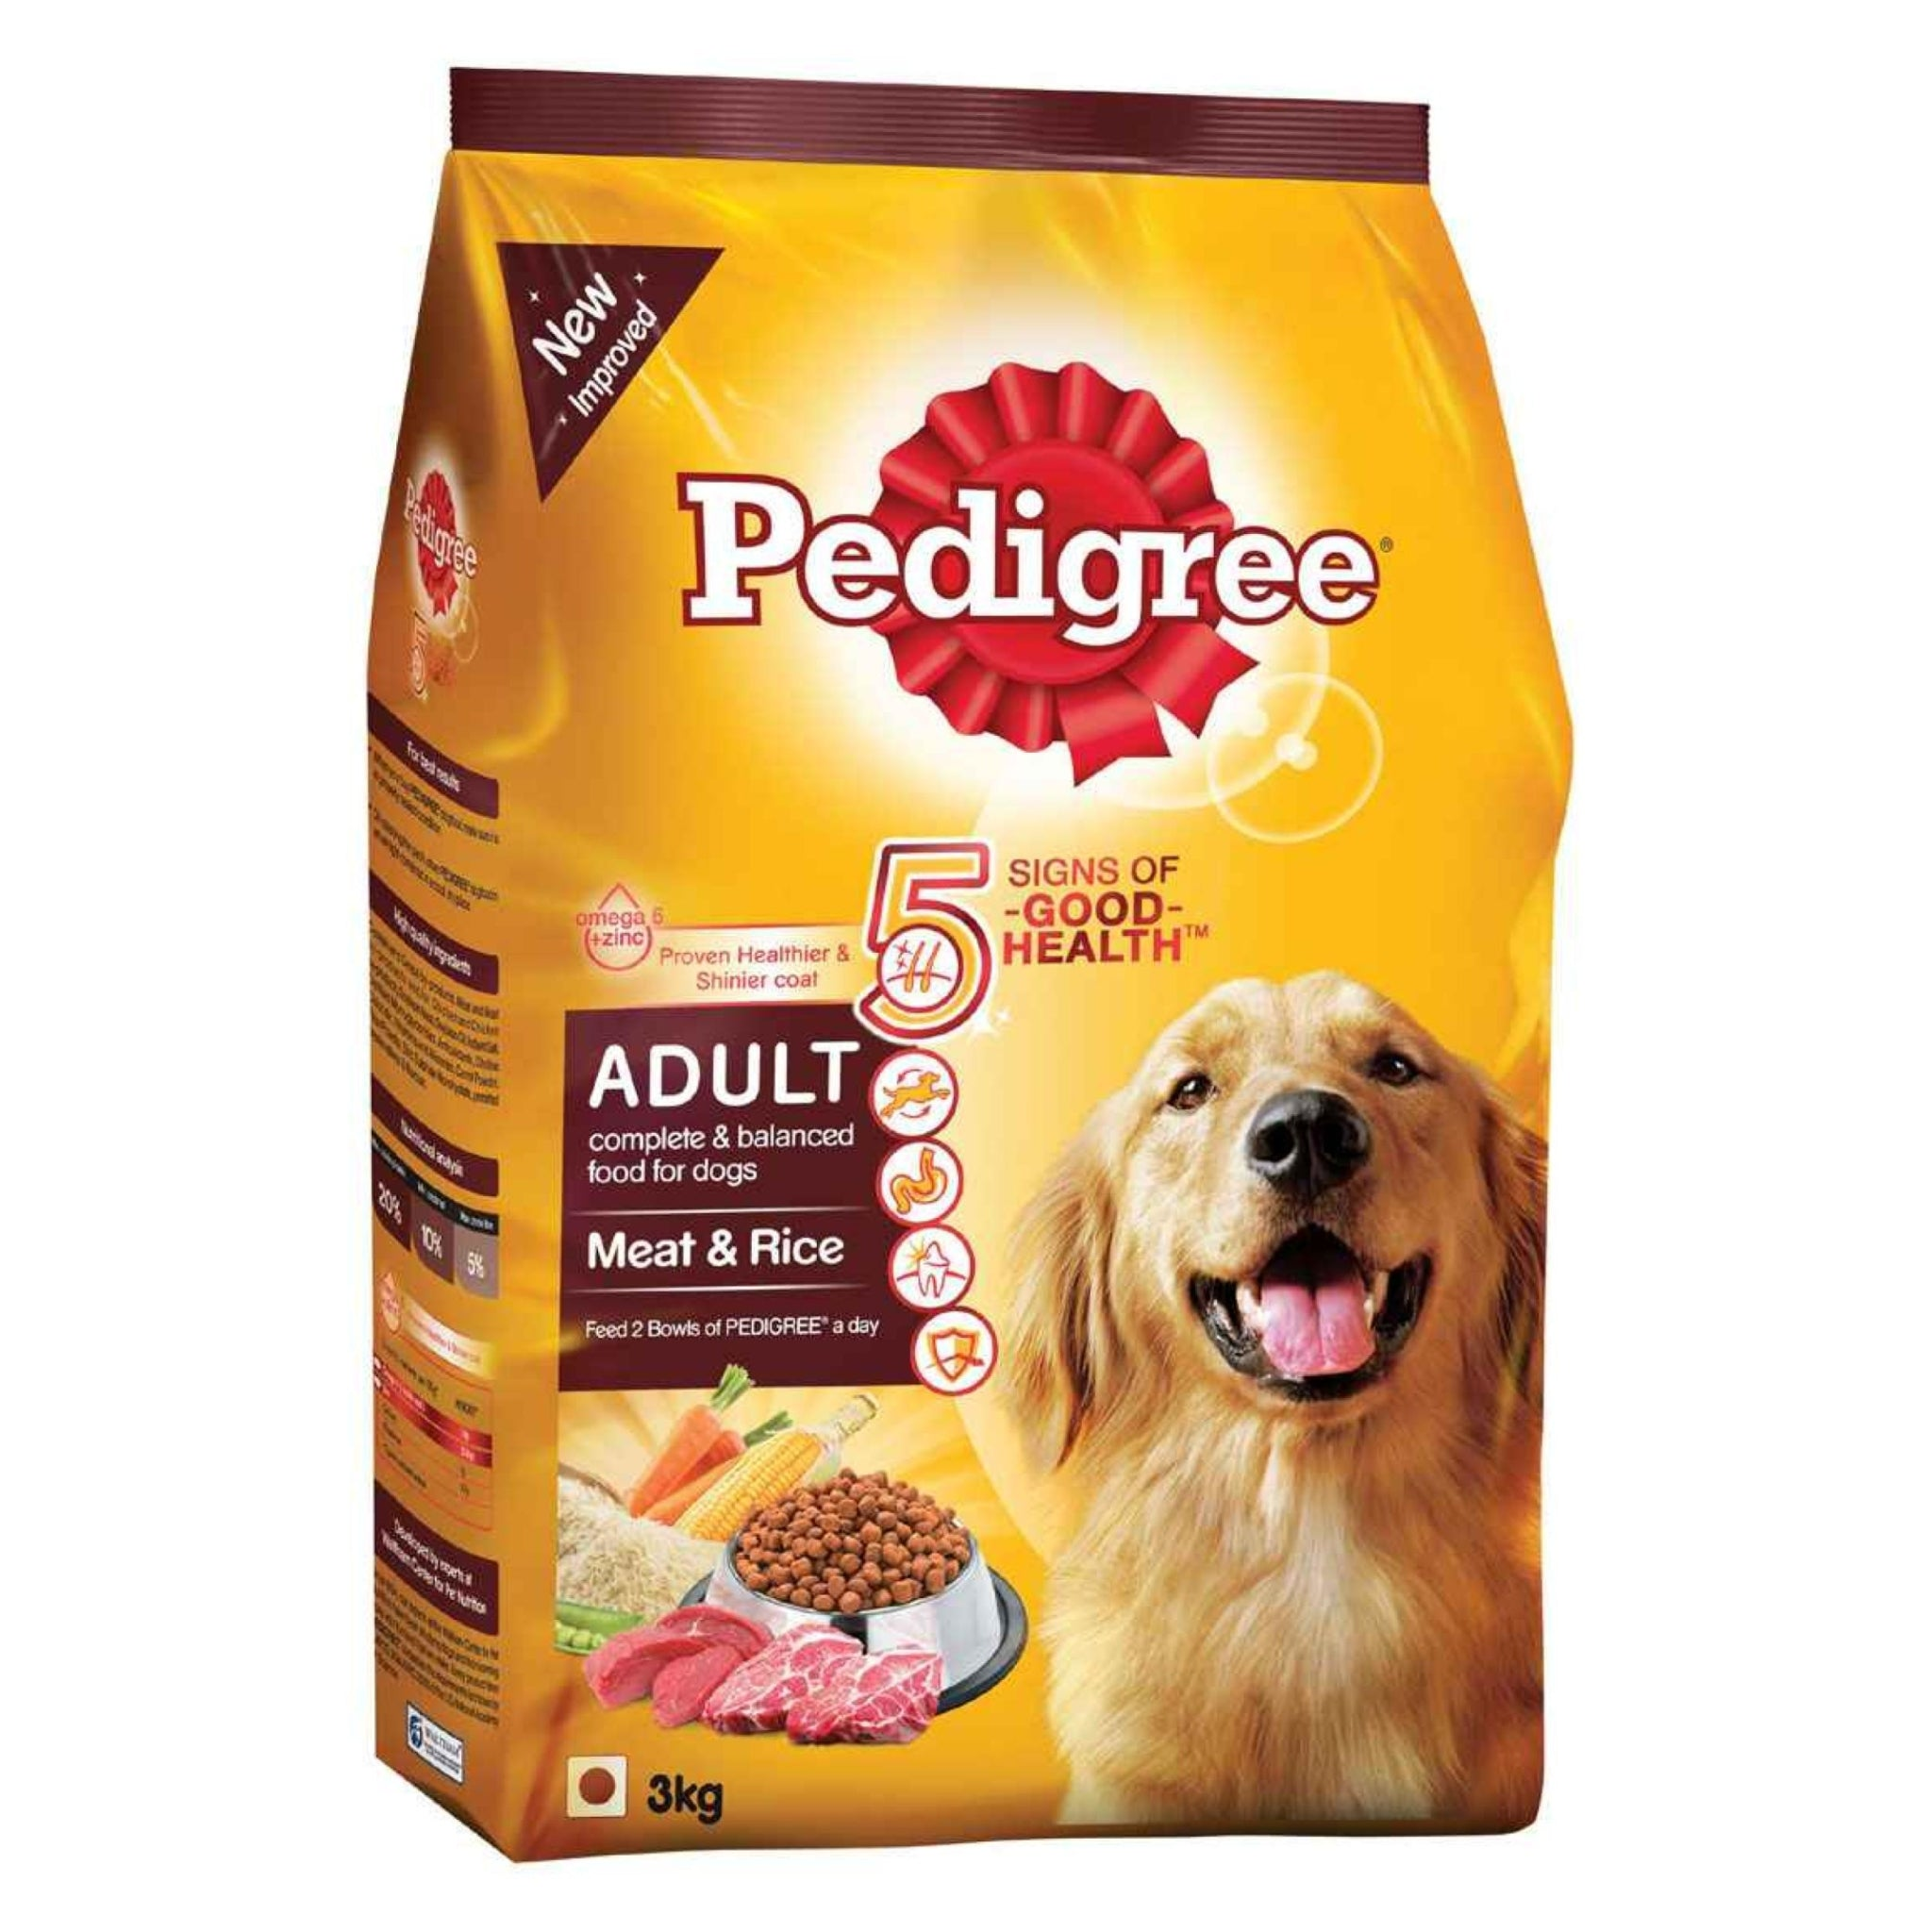 Pedigree Meat And Rice Adult Dog Food - Poochles